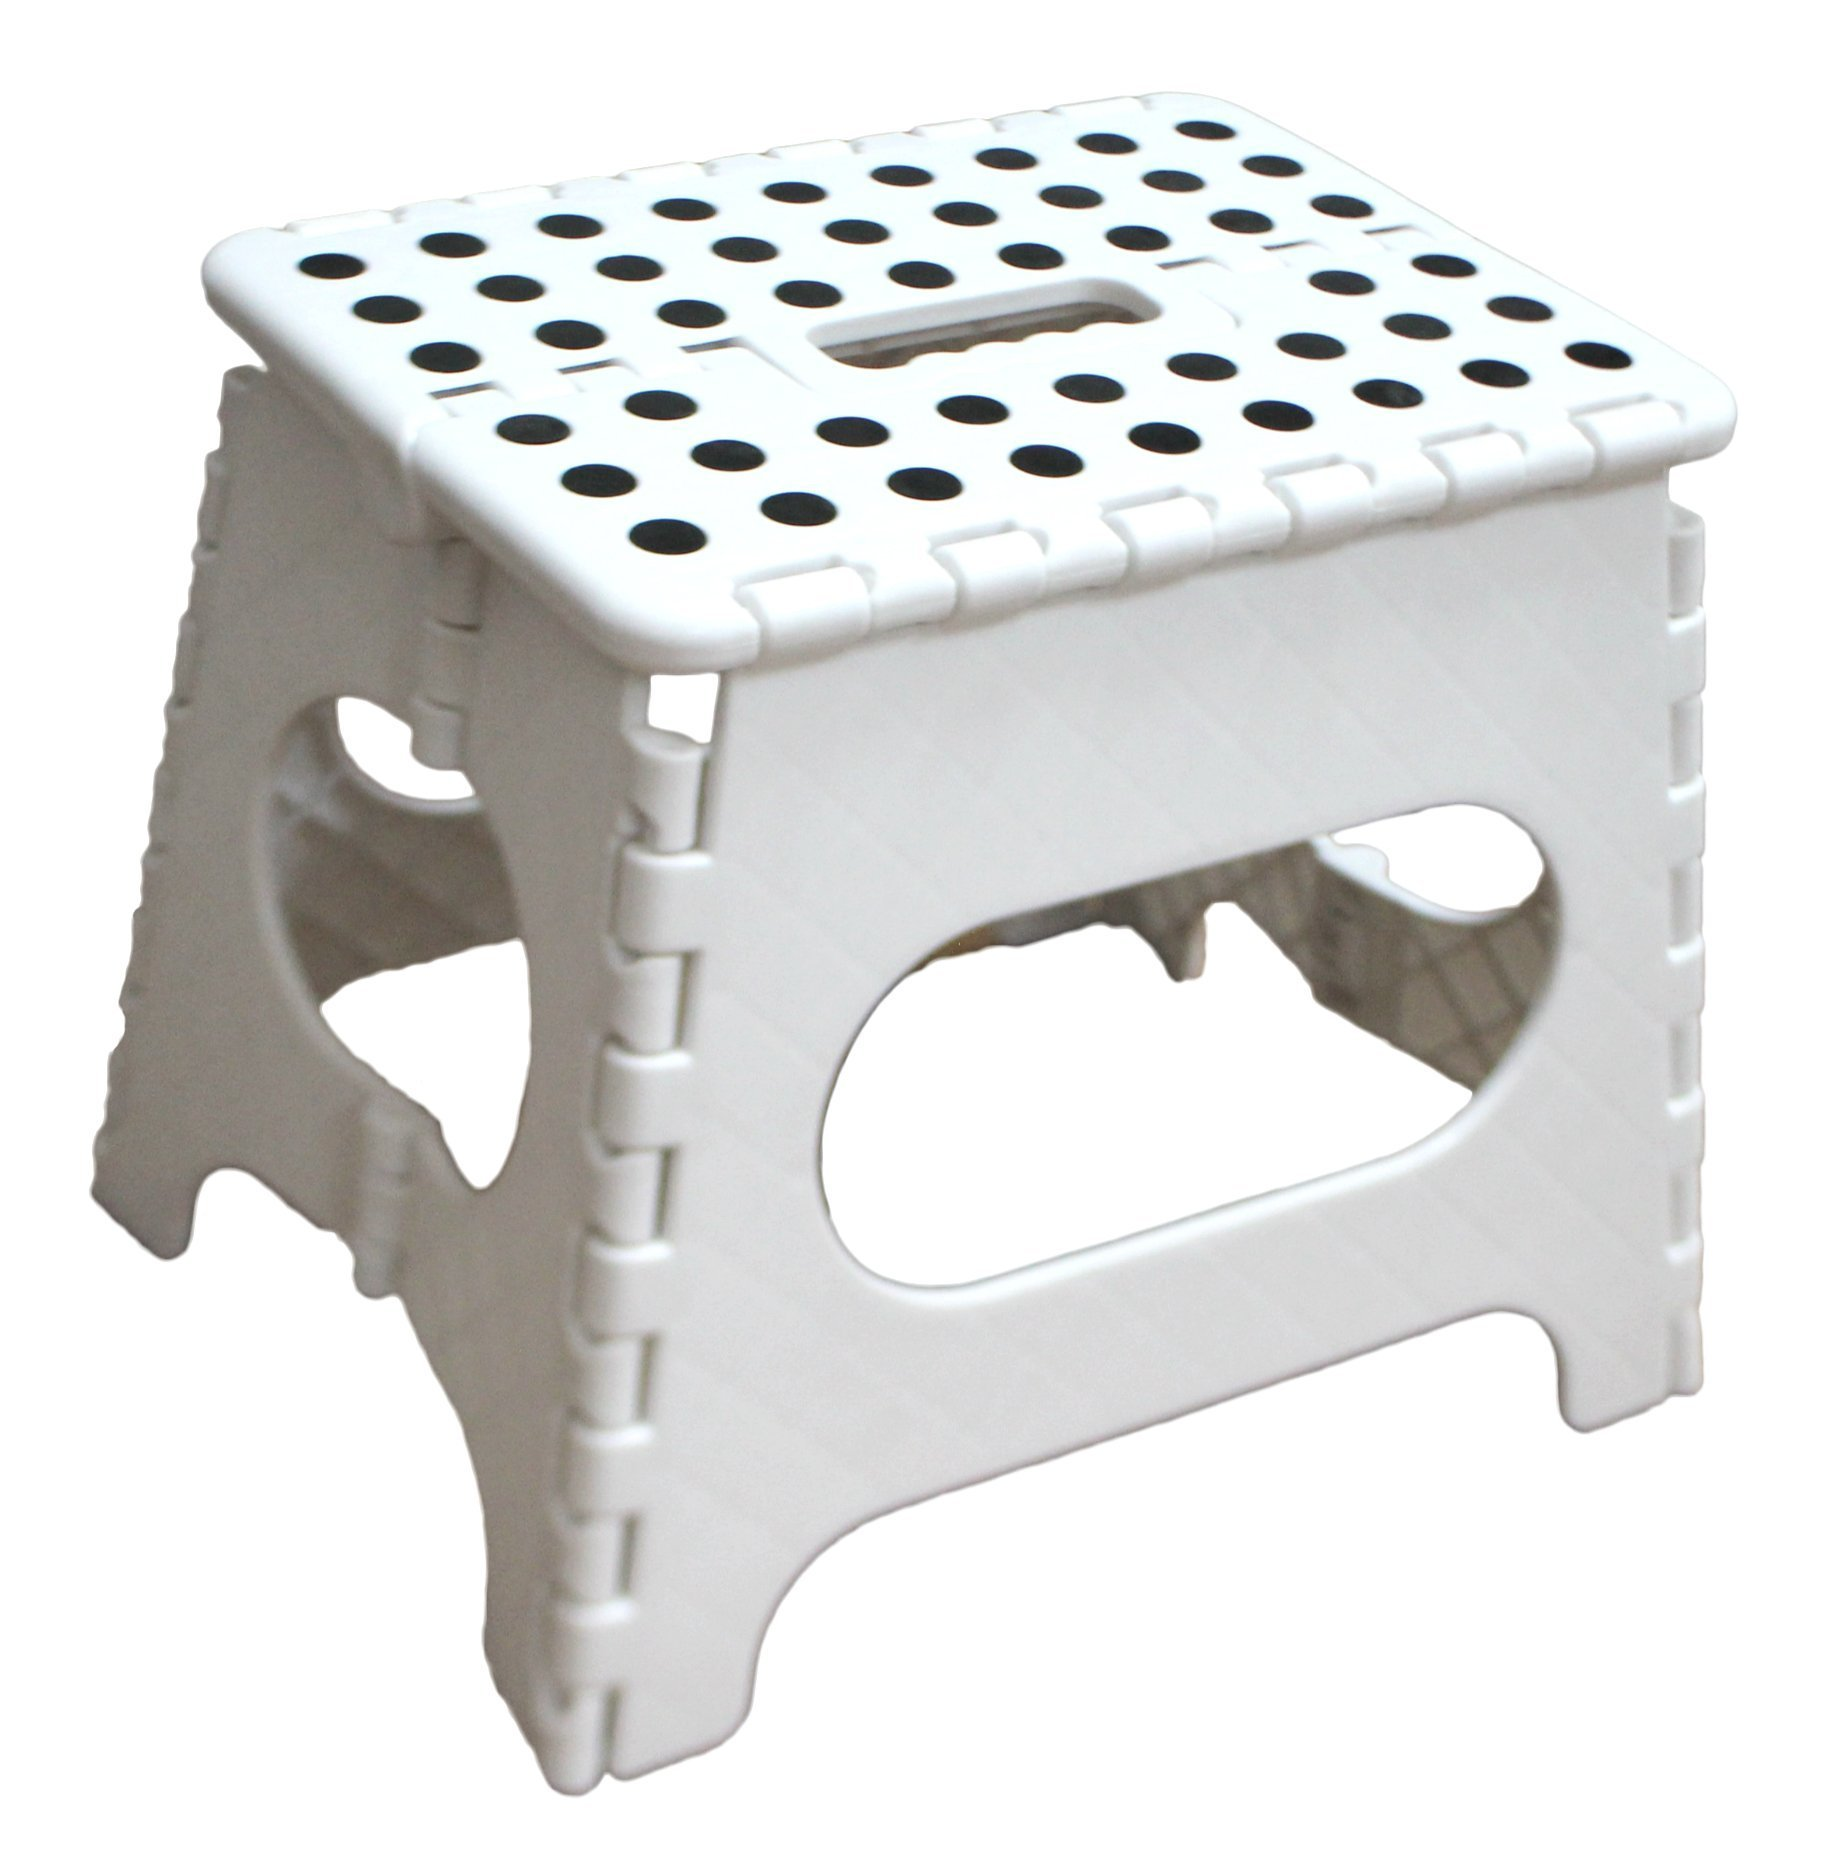 Galleon Jeronic 11 Inch Folding Step Stool Holds Up To